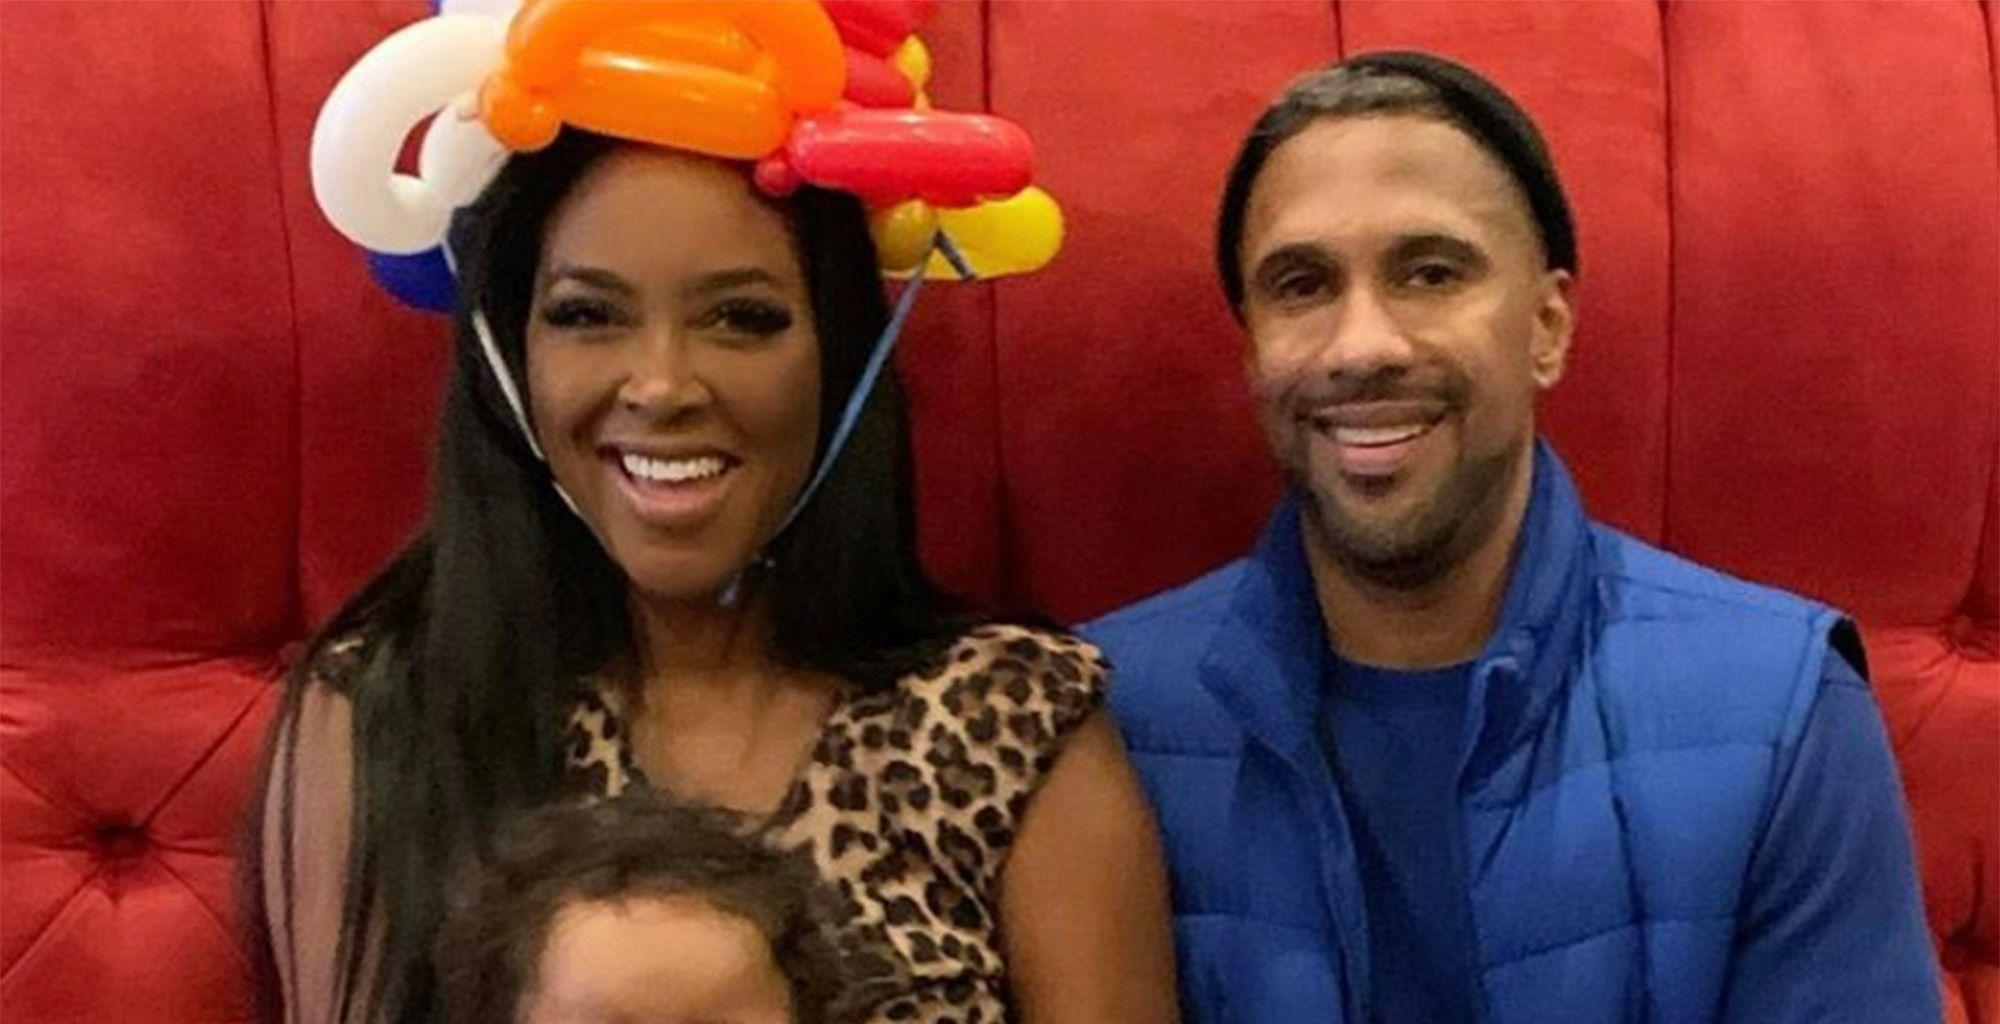 St. Lucia Court Clerk Confirms Kenya Moore's Marriage Certificate Is Real After Speculation That She Faked It